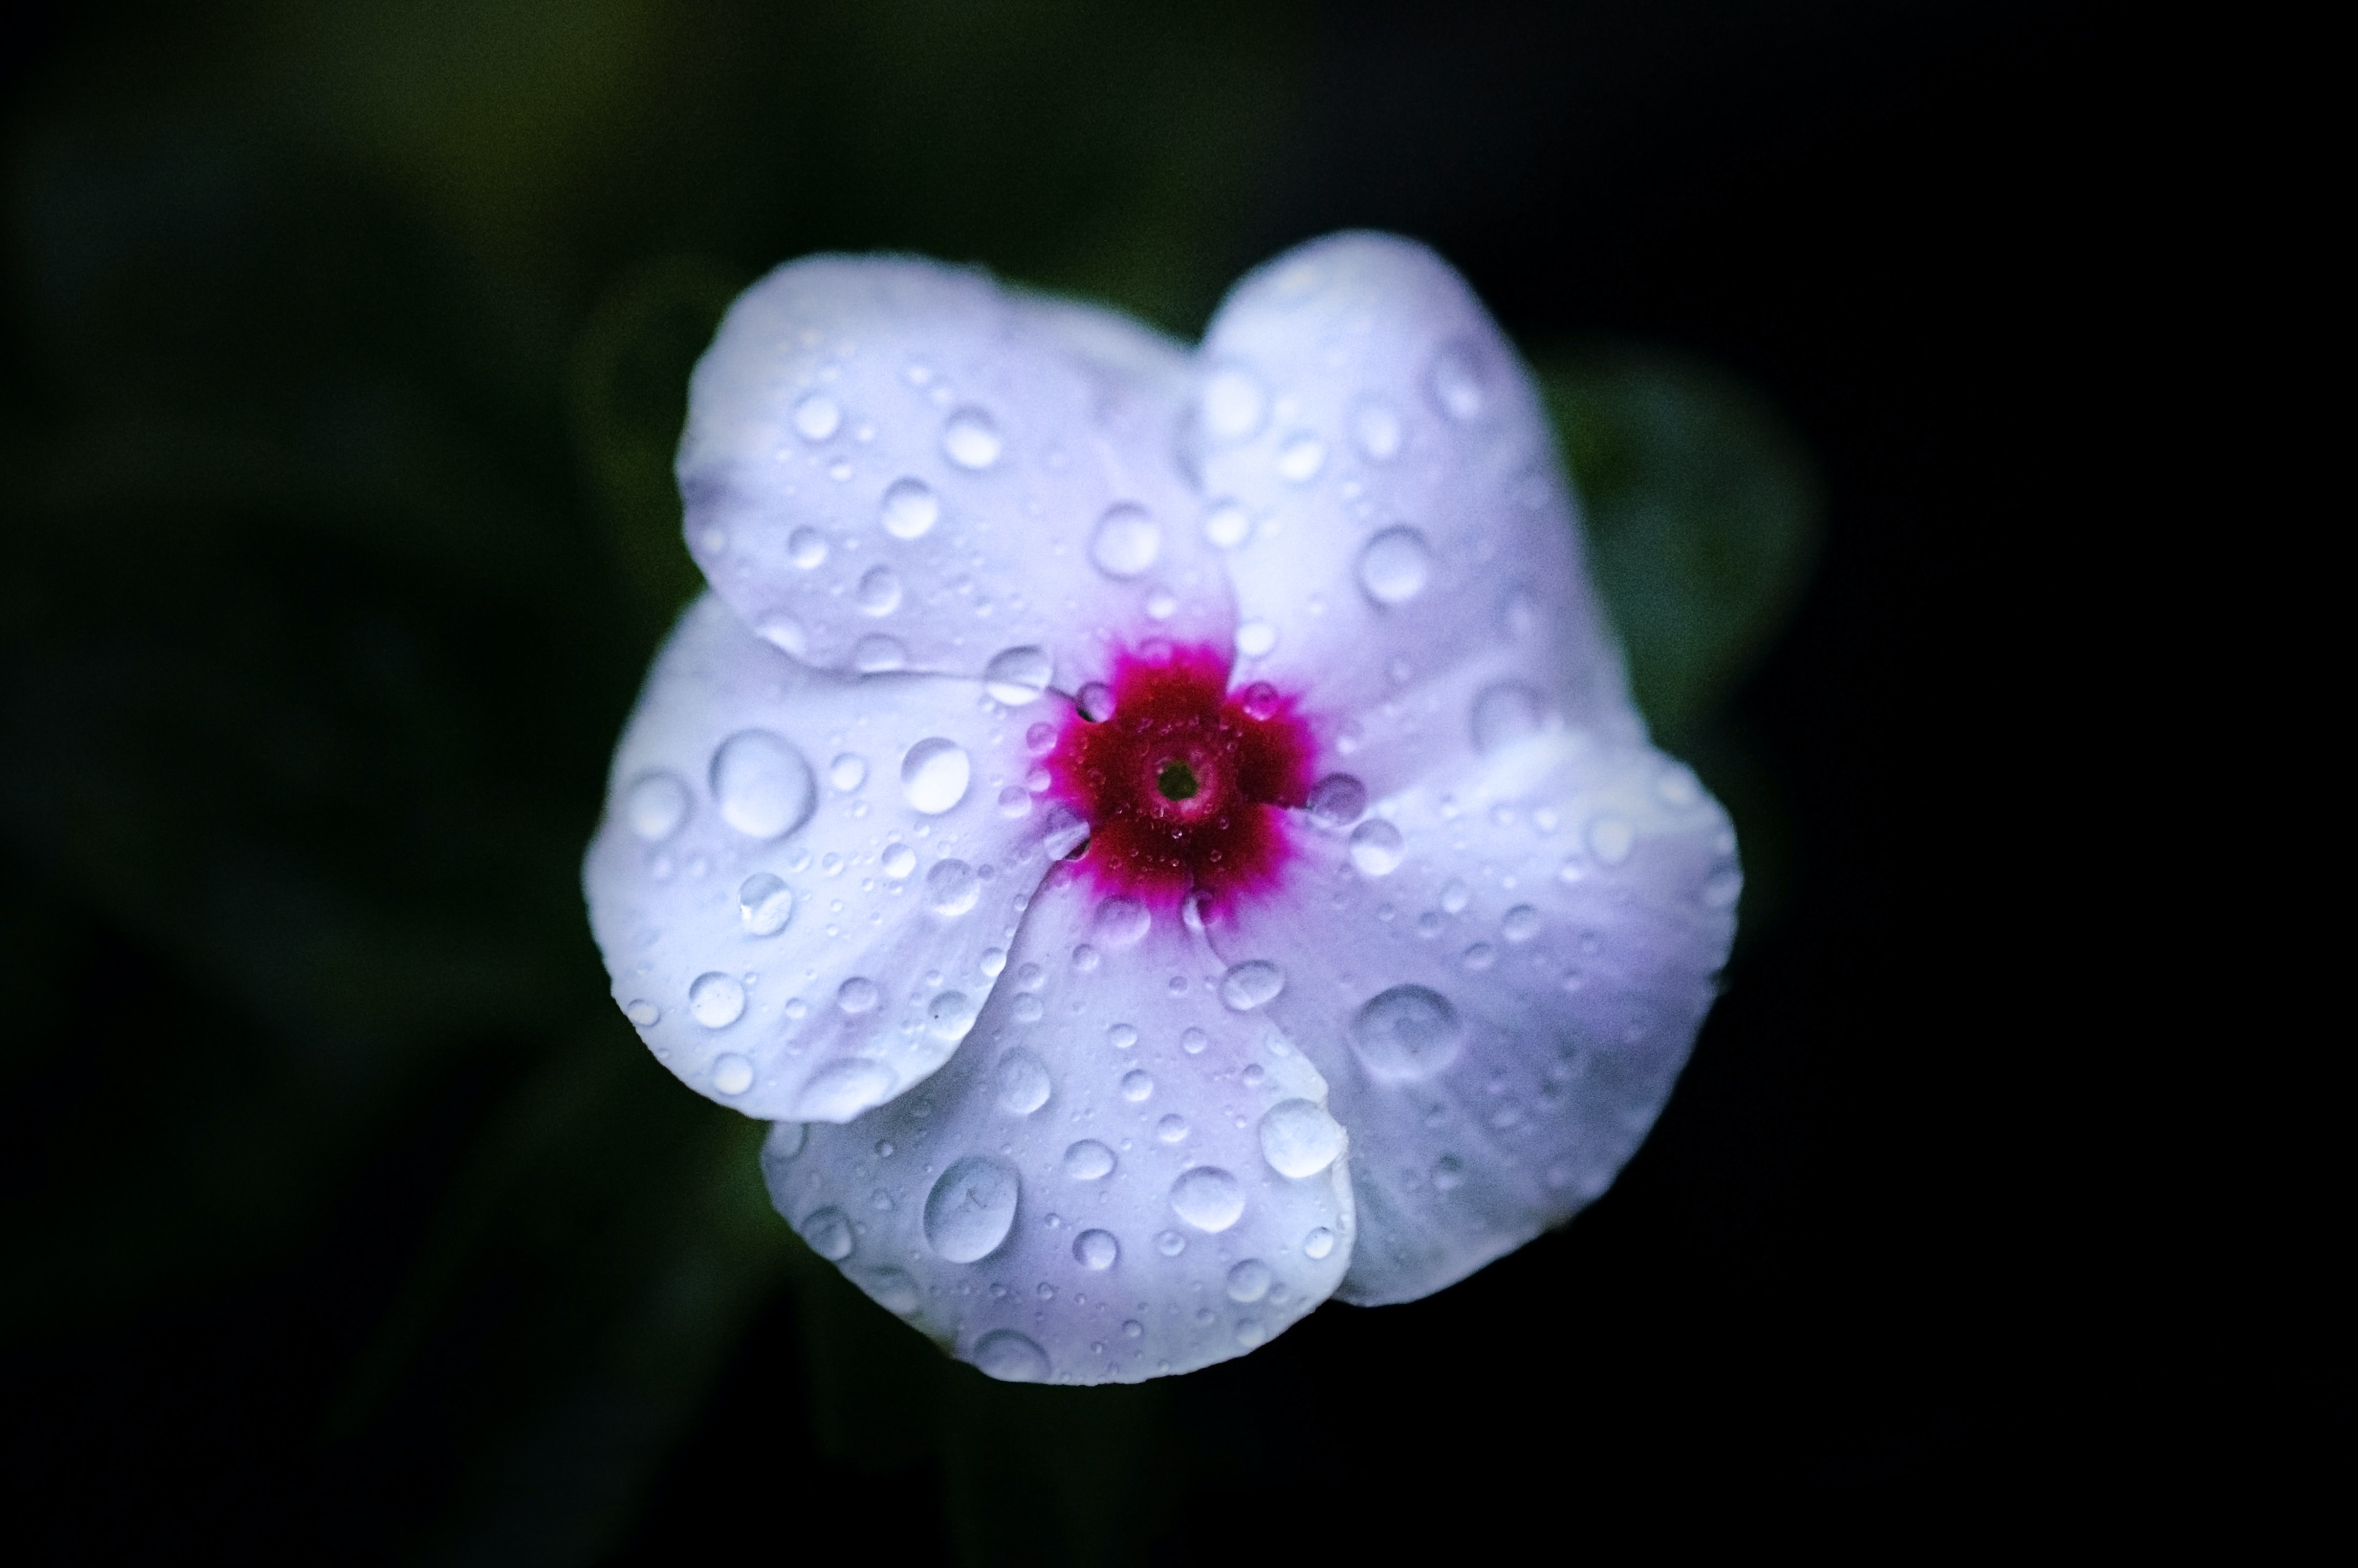 Close-up of a white flower with a red centre covered in droplets of water